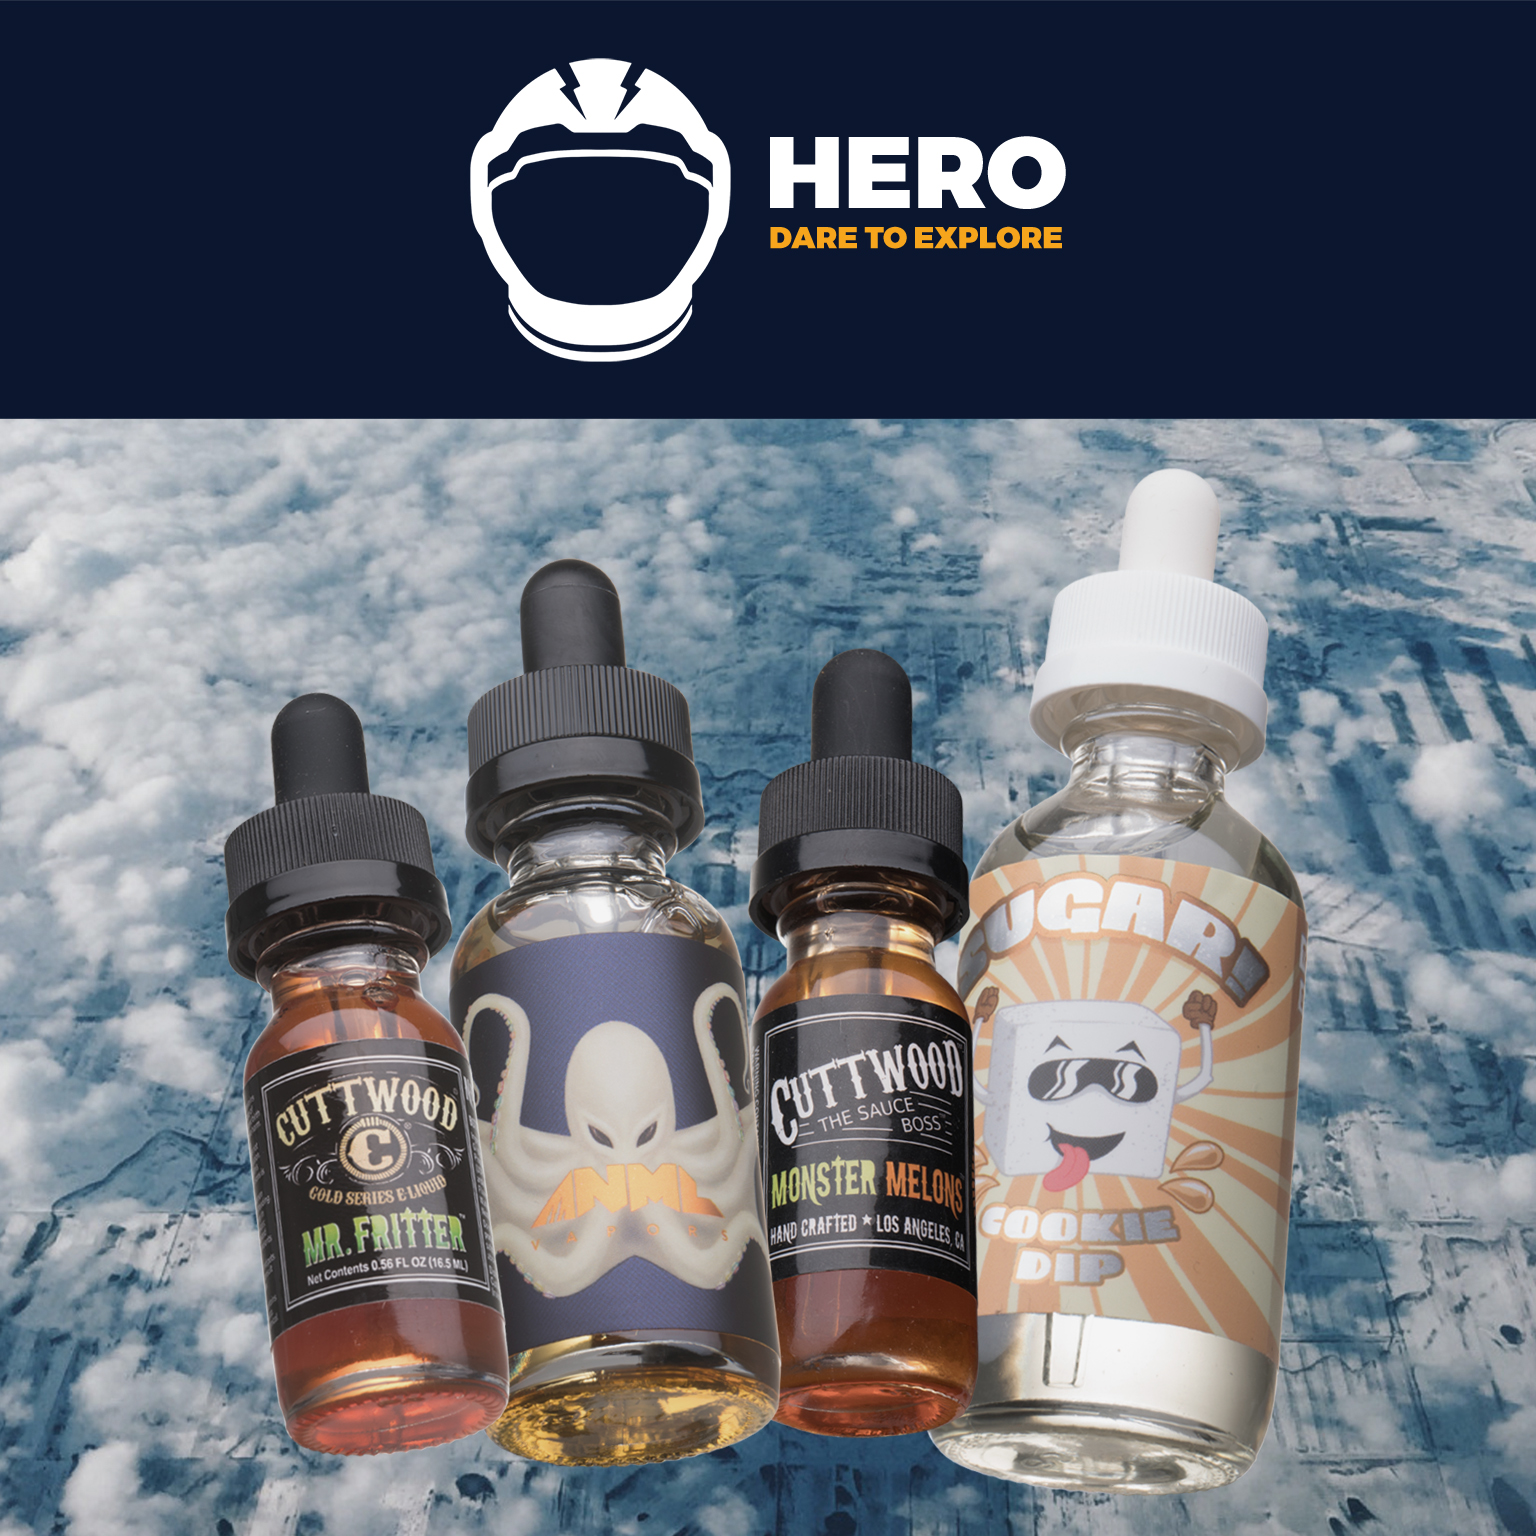 120mL SUPER HERO Box | Feat. Cookie Dip by Sugar!, Looper by ANML, Mr. Fritter by Cuttwood, and Mega Melons by Cuttwood Photo